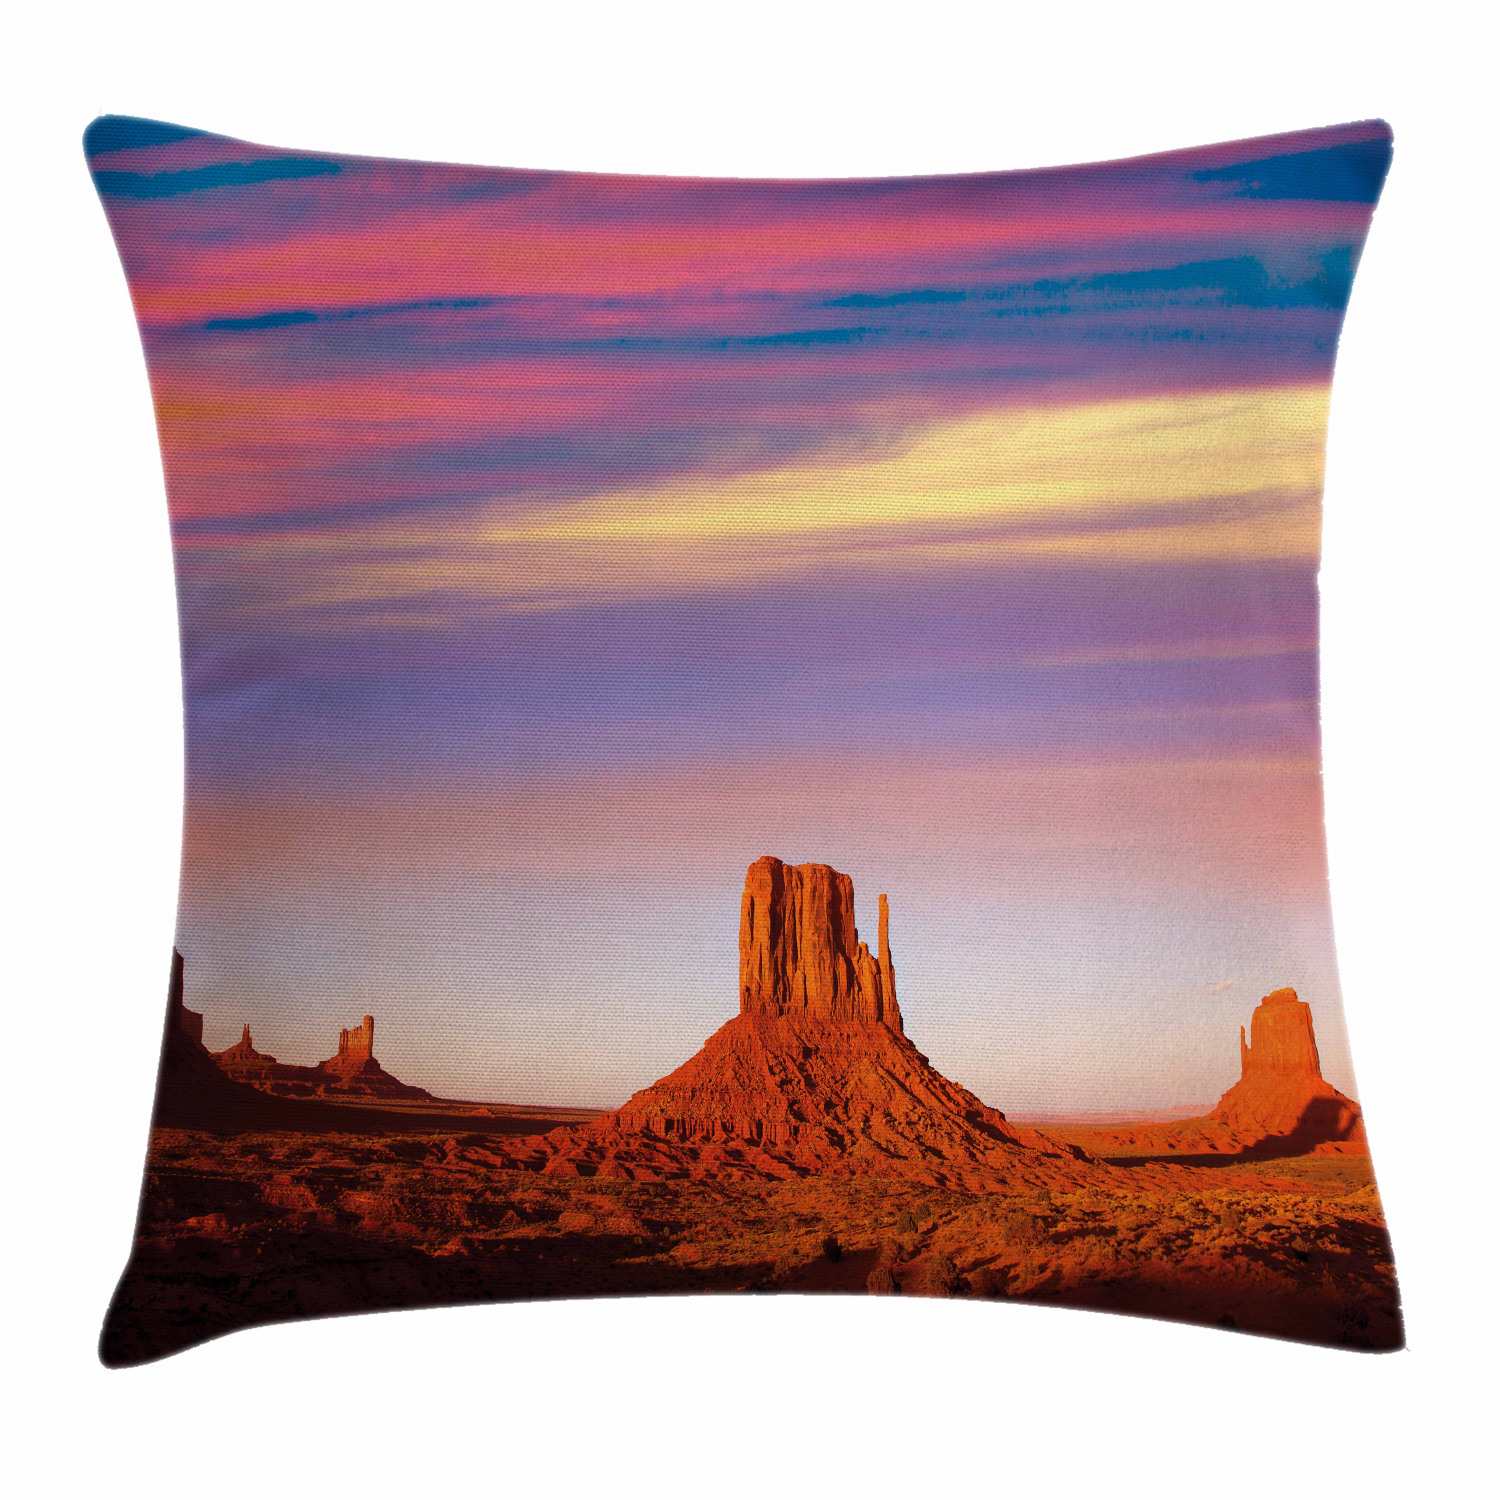 United States Throw Pillow Cushion Cover Monument Valley West Mitten And Merrick Butte Sunset Utah Desert Decorative Square Accent Pillow Case 20 X 20 Inches Dark Orange Pink Blue By Ambesonne